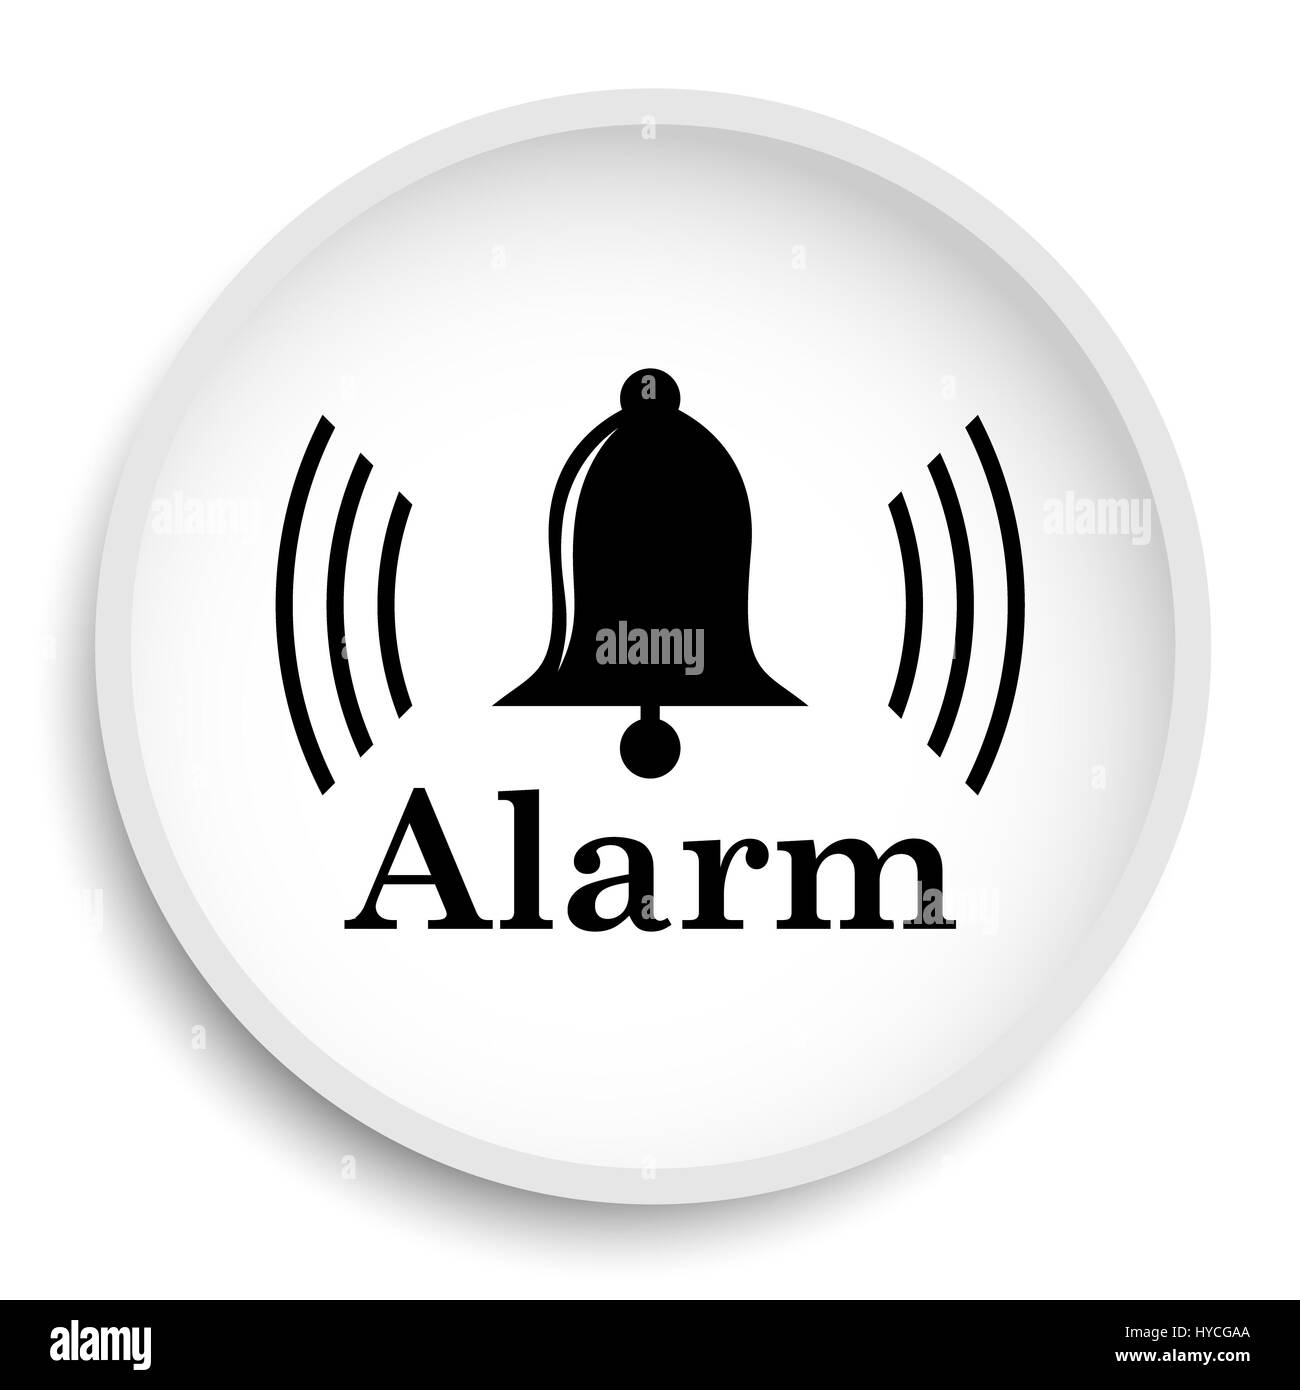 Alarm icon. Alarm website button on white background. - Stock Image